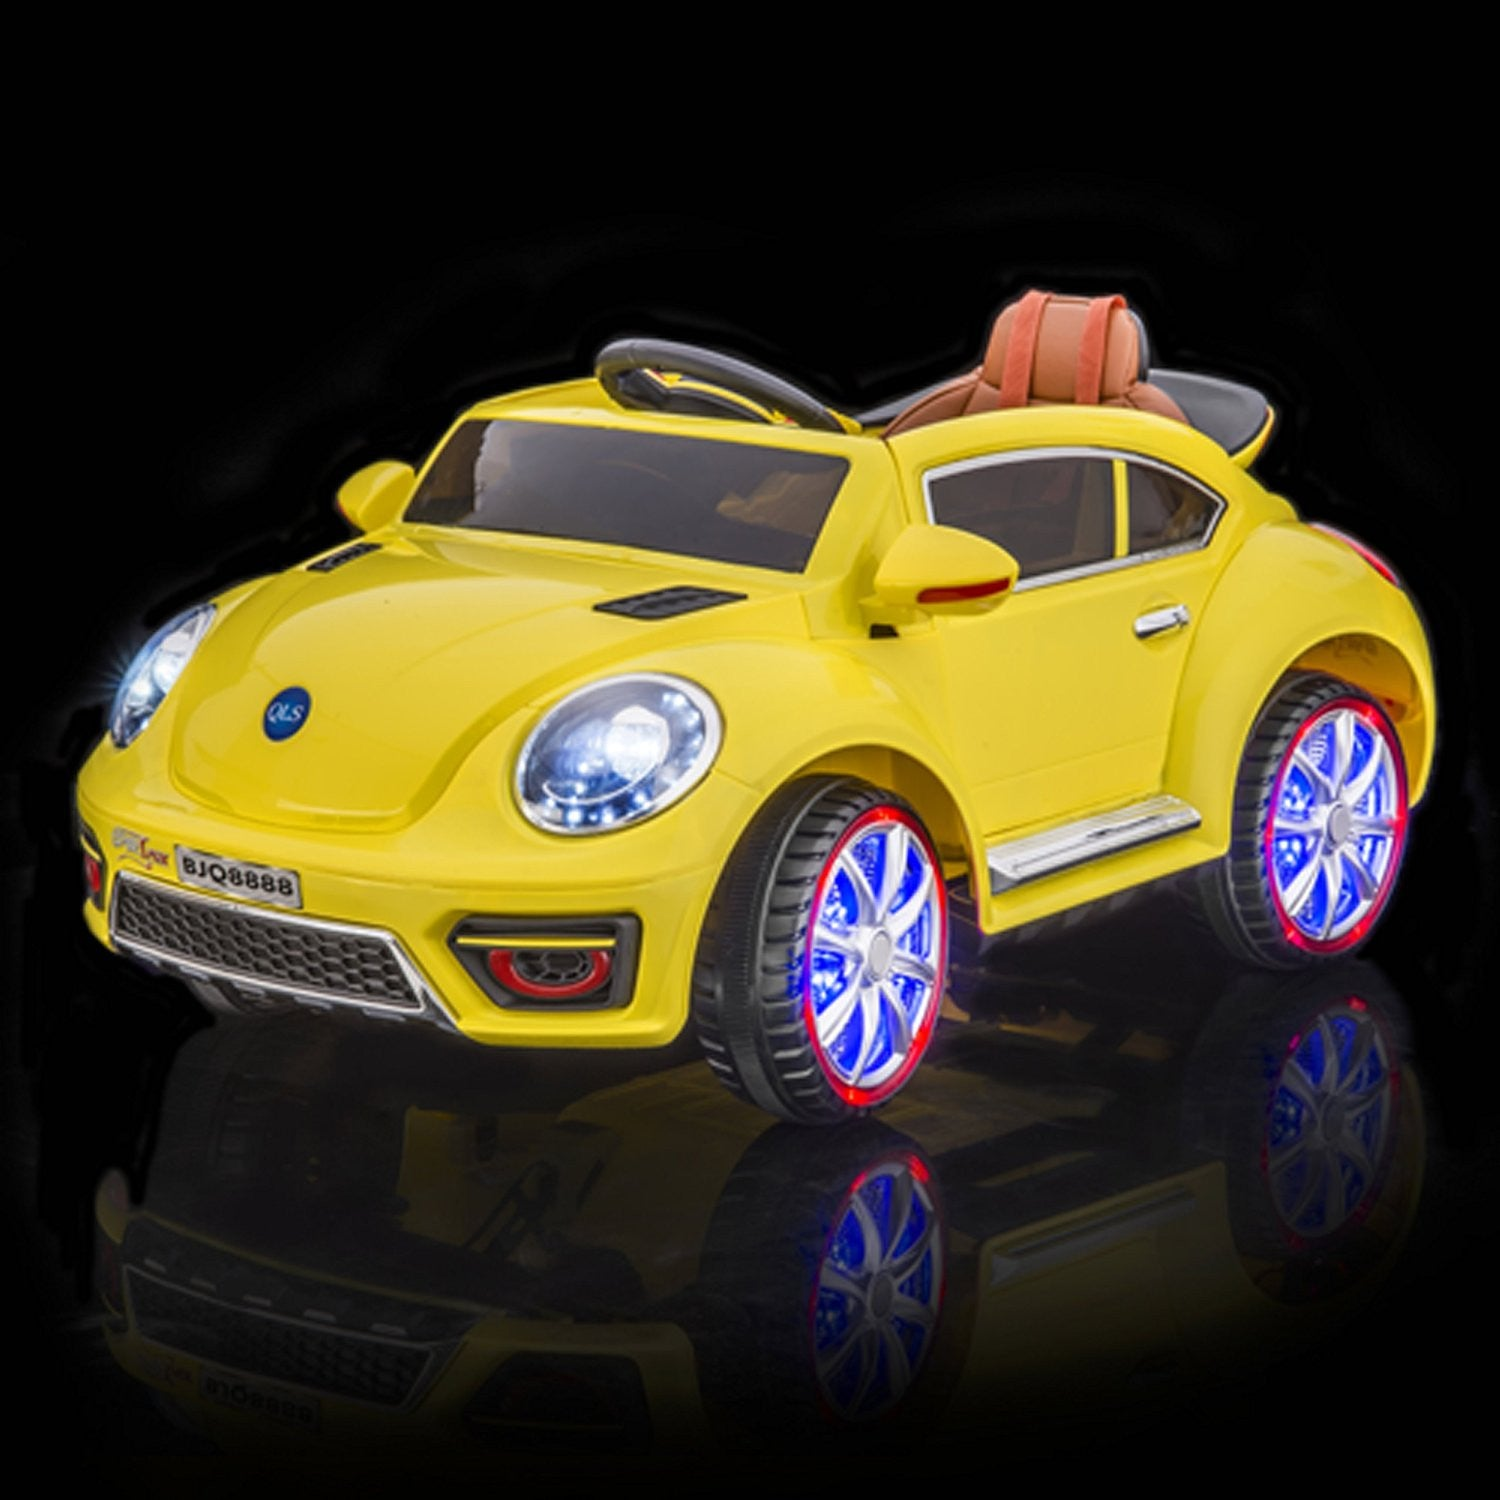 Volkswagen Beetle Style Remote Control Ride On Car